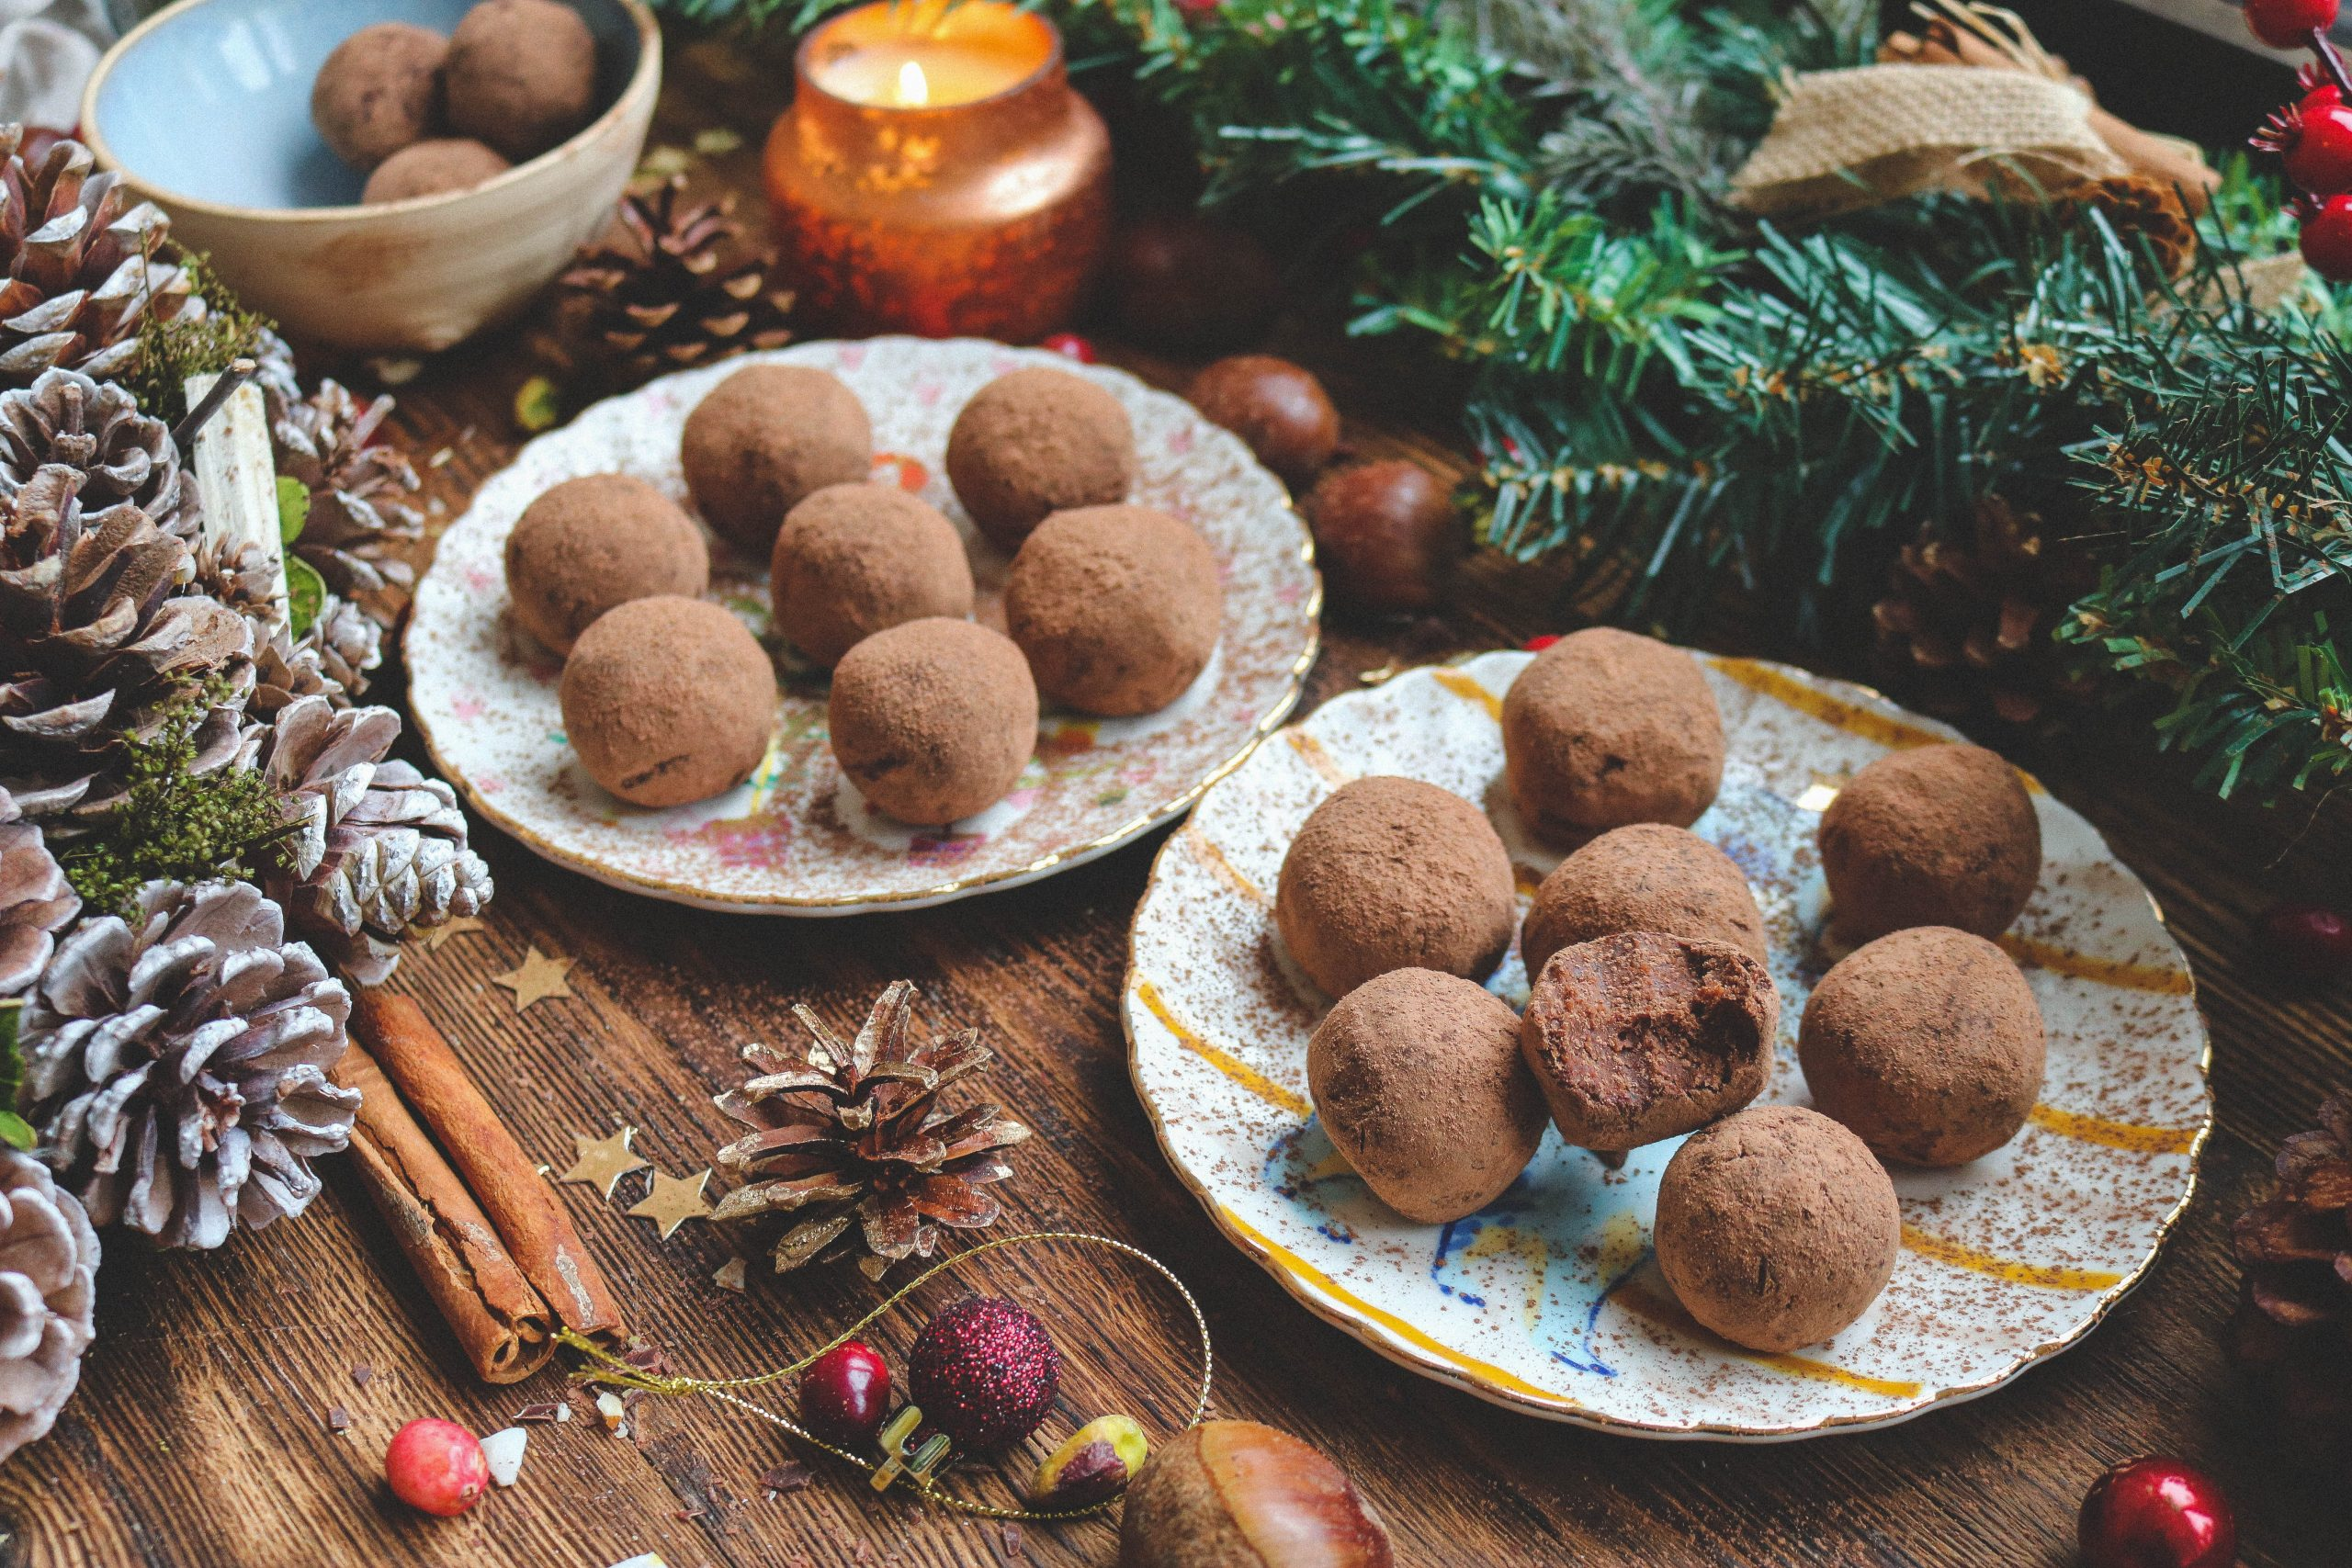 Chocolate & Chestnut Truffles